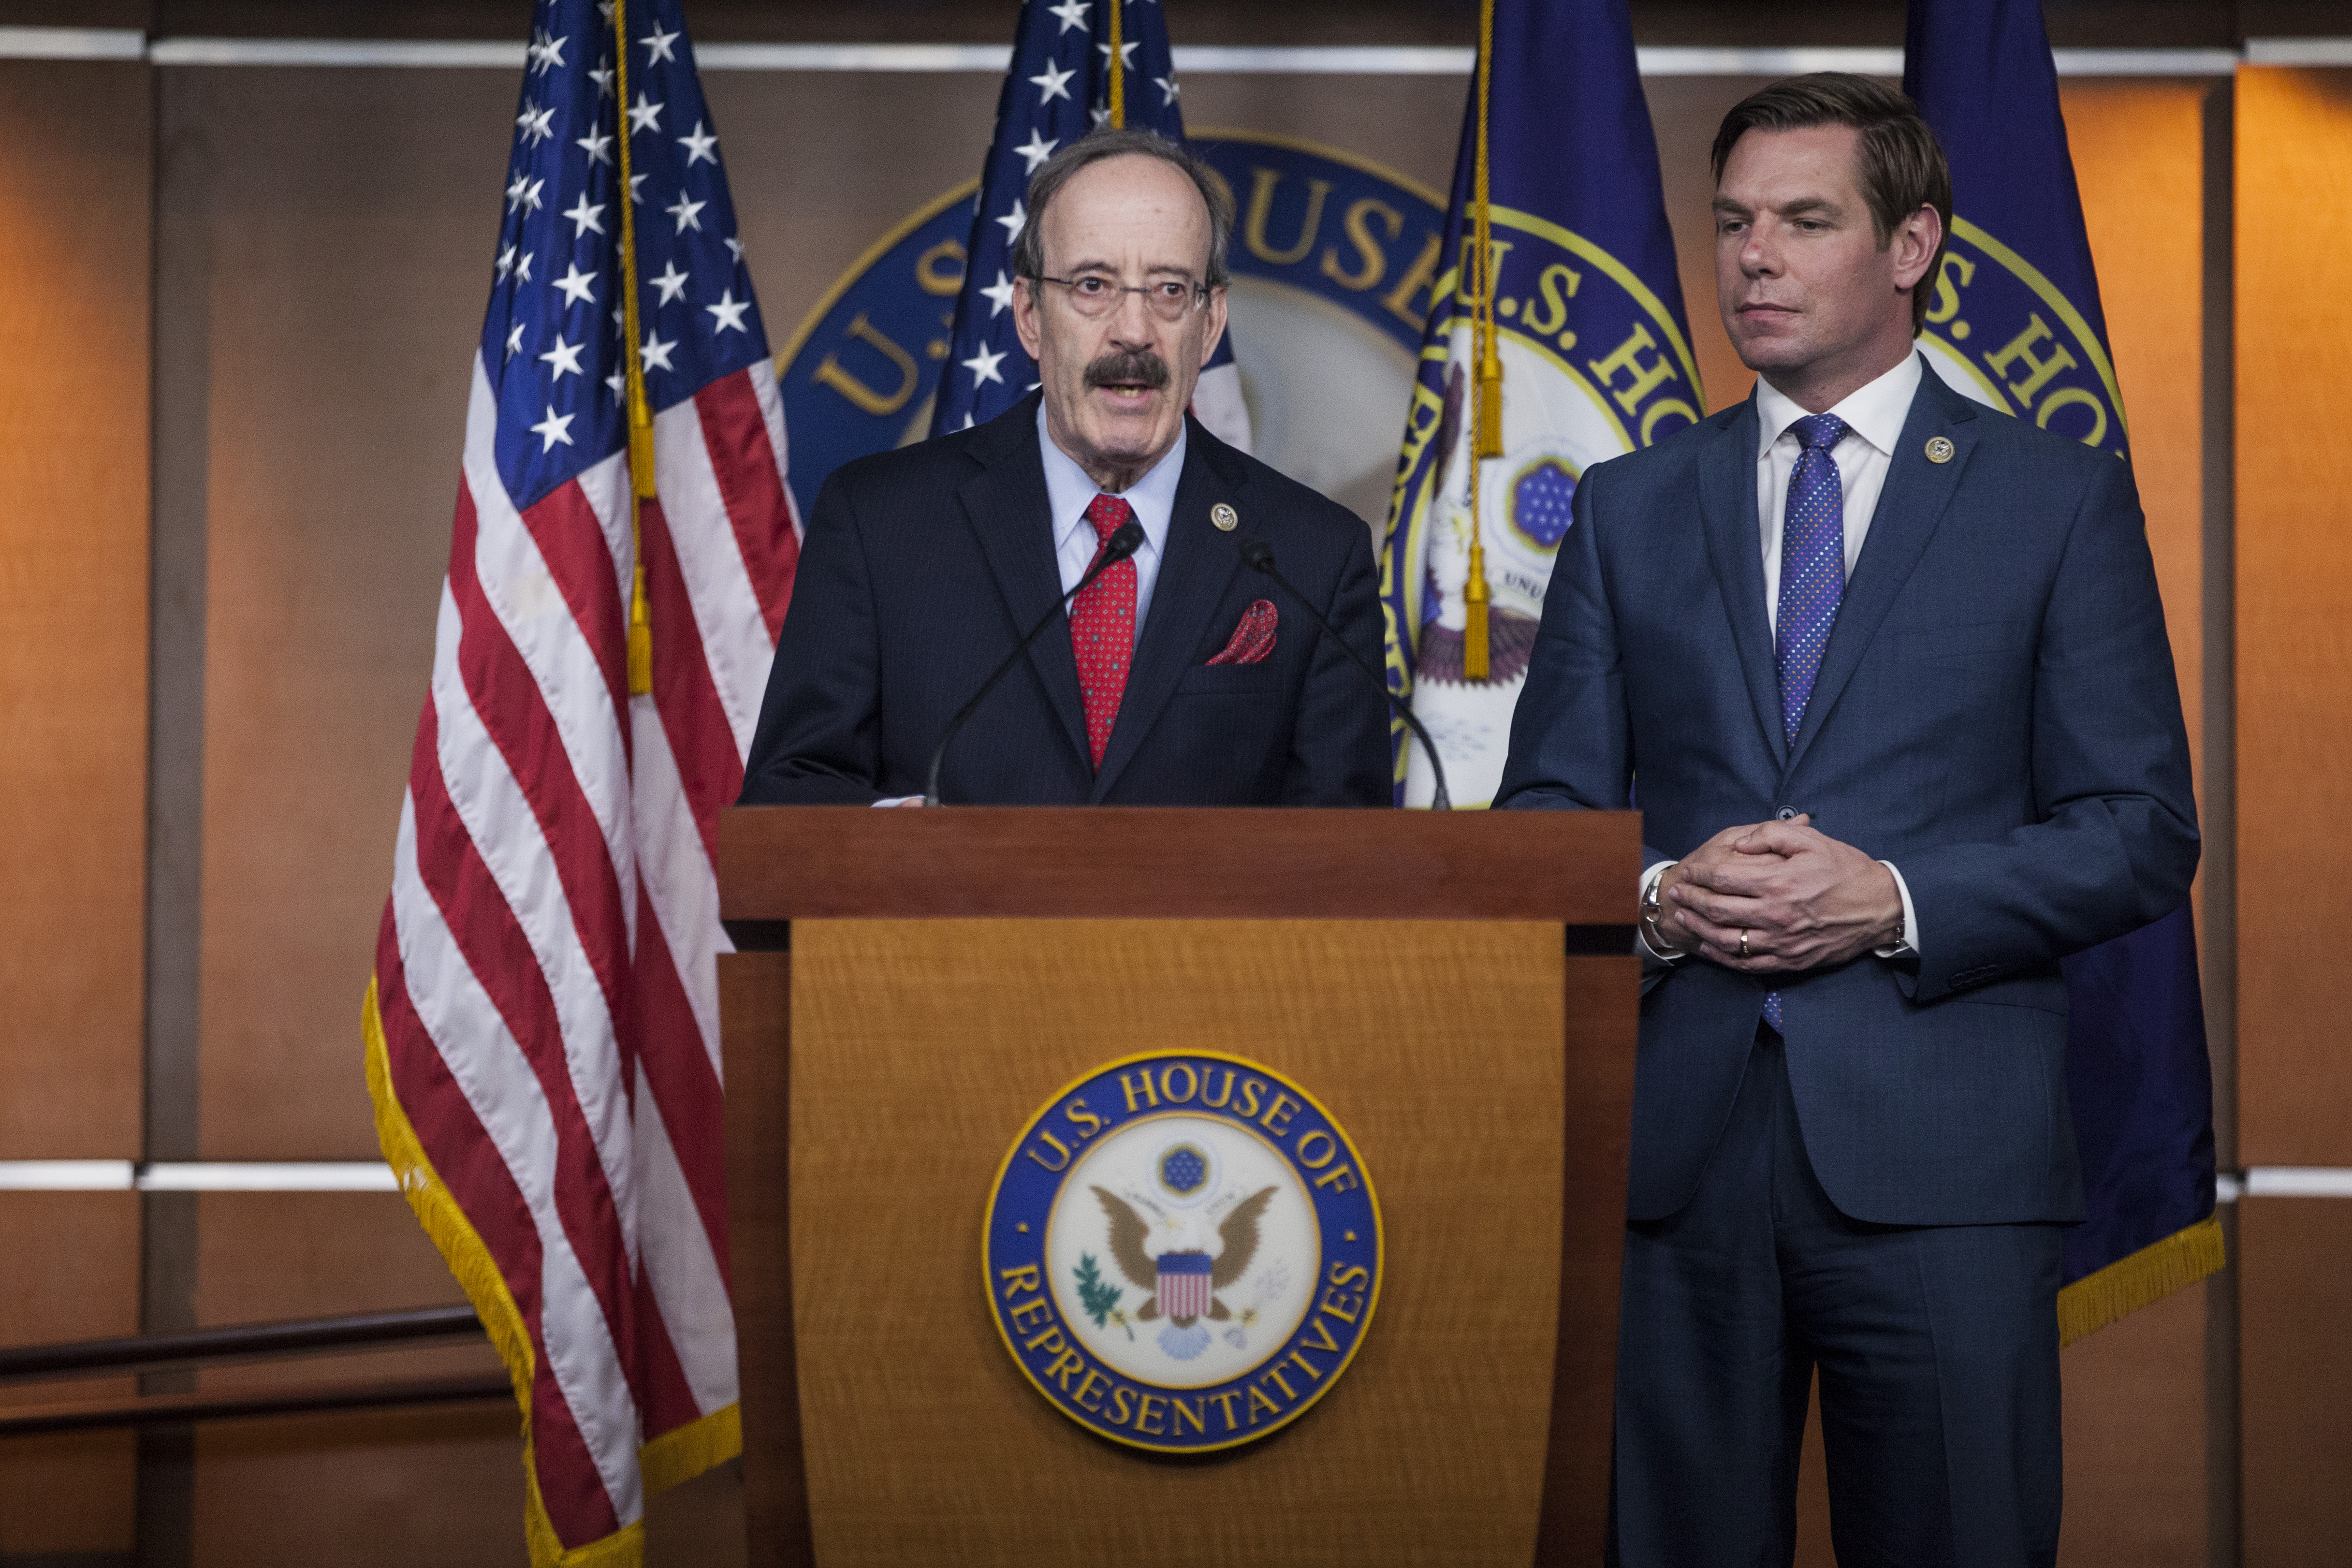 House Foreign Affairs Committee Chairman Rep. Elliot Engel (D-NY) during a news conference on April 5, 2017 in Washington, DC.